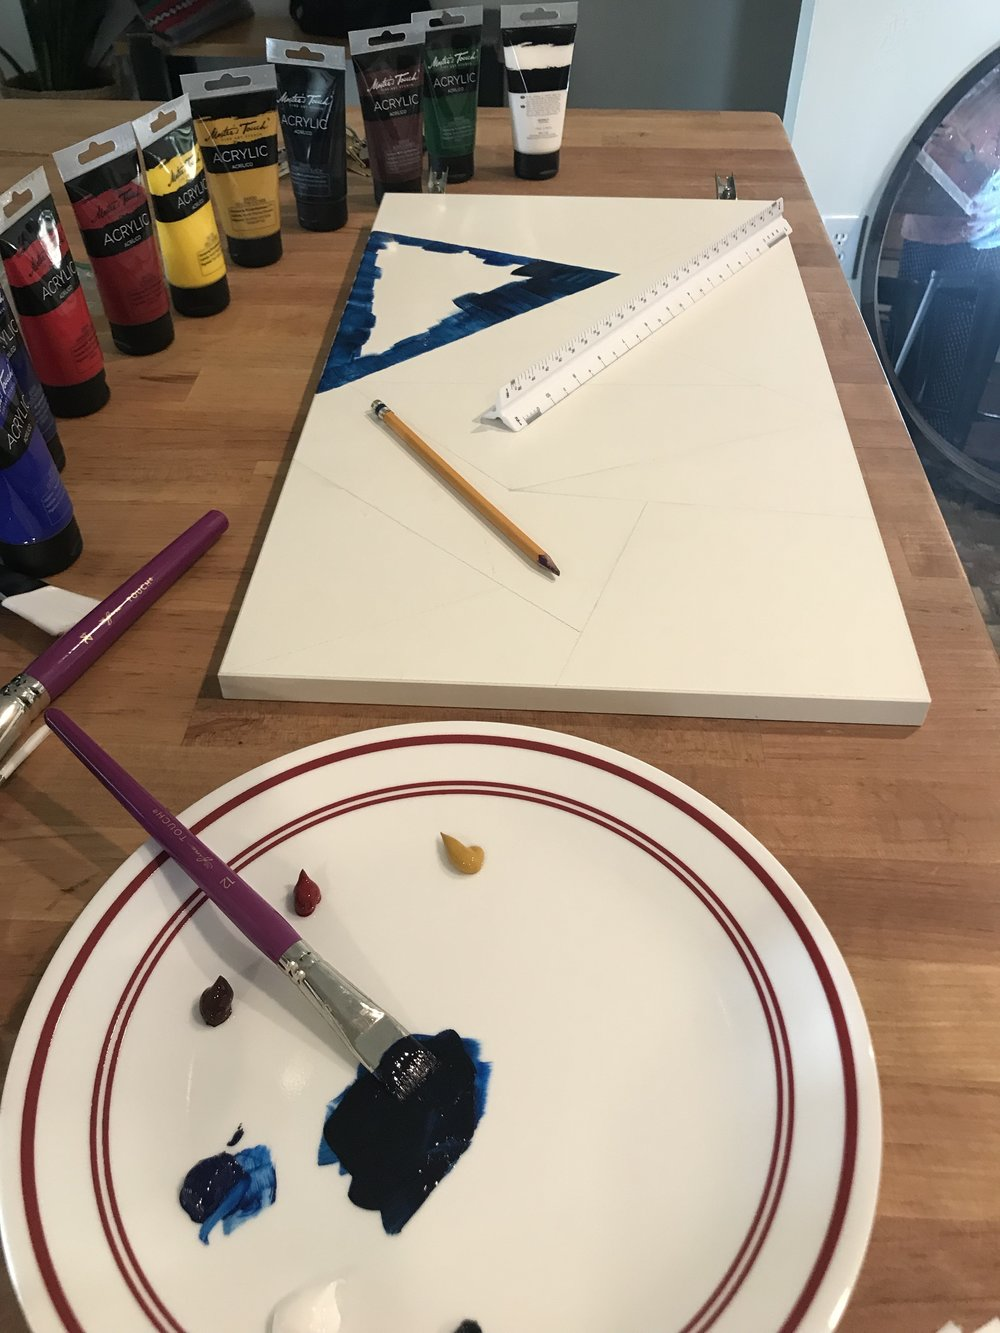 Here is my set up at the kitchen table. Yes, that is a dinner plate being used as a palette. I used acrylic paints. They are water based so no harm was done to dinner plates during this DIY project. I purchased the paints at Hobby Lobby on sale 40% off. I think you can go any day of the year and their craft supplies will be on sale. But nonetheless it's exciting to think you are there on a special sale day. Leave me to my bliss.  My design is simple. Not much thought went into it. I used a #2 pencil and a straight edge to make geometric designs. Keep in mind the smaller the shapes the more precise painting you will have to do. If this is in your comfort zone then by all means make small shapes. Personally it was out of my comfort zone. Especially since I rarely paint, except for walls and floors.